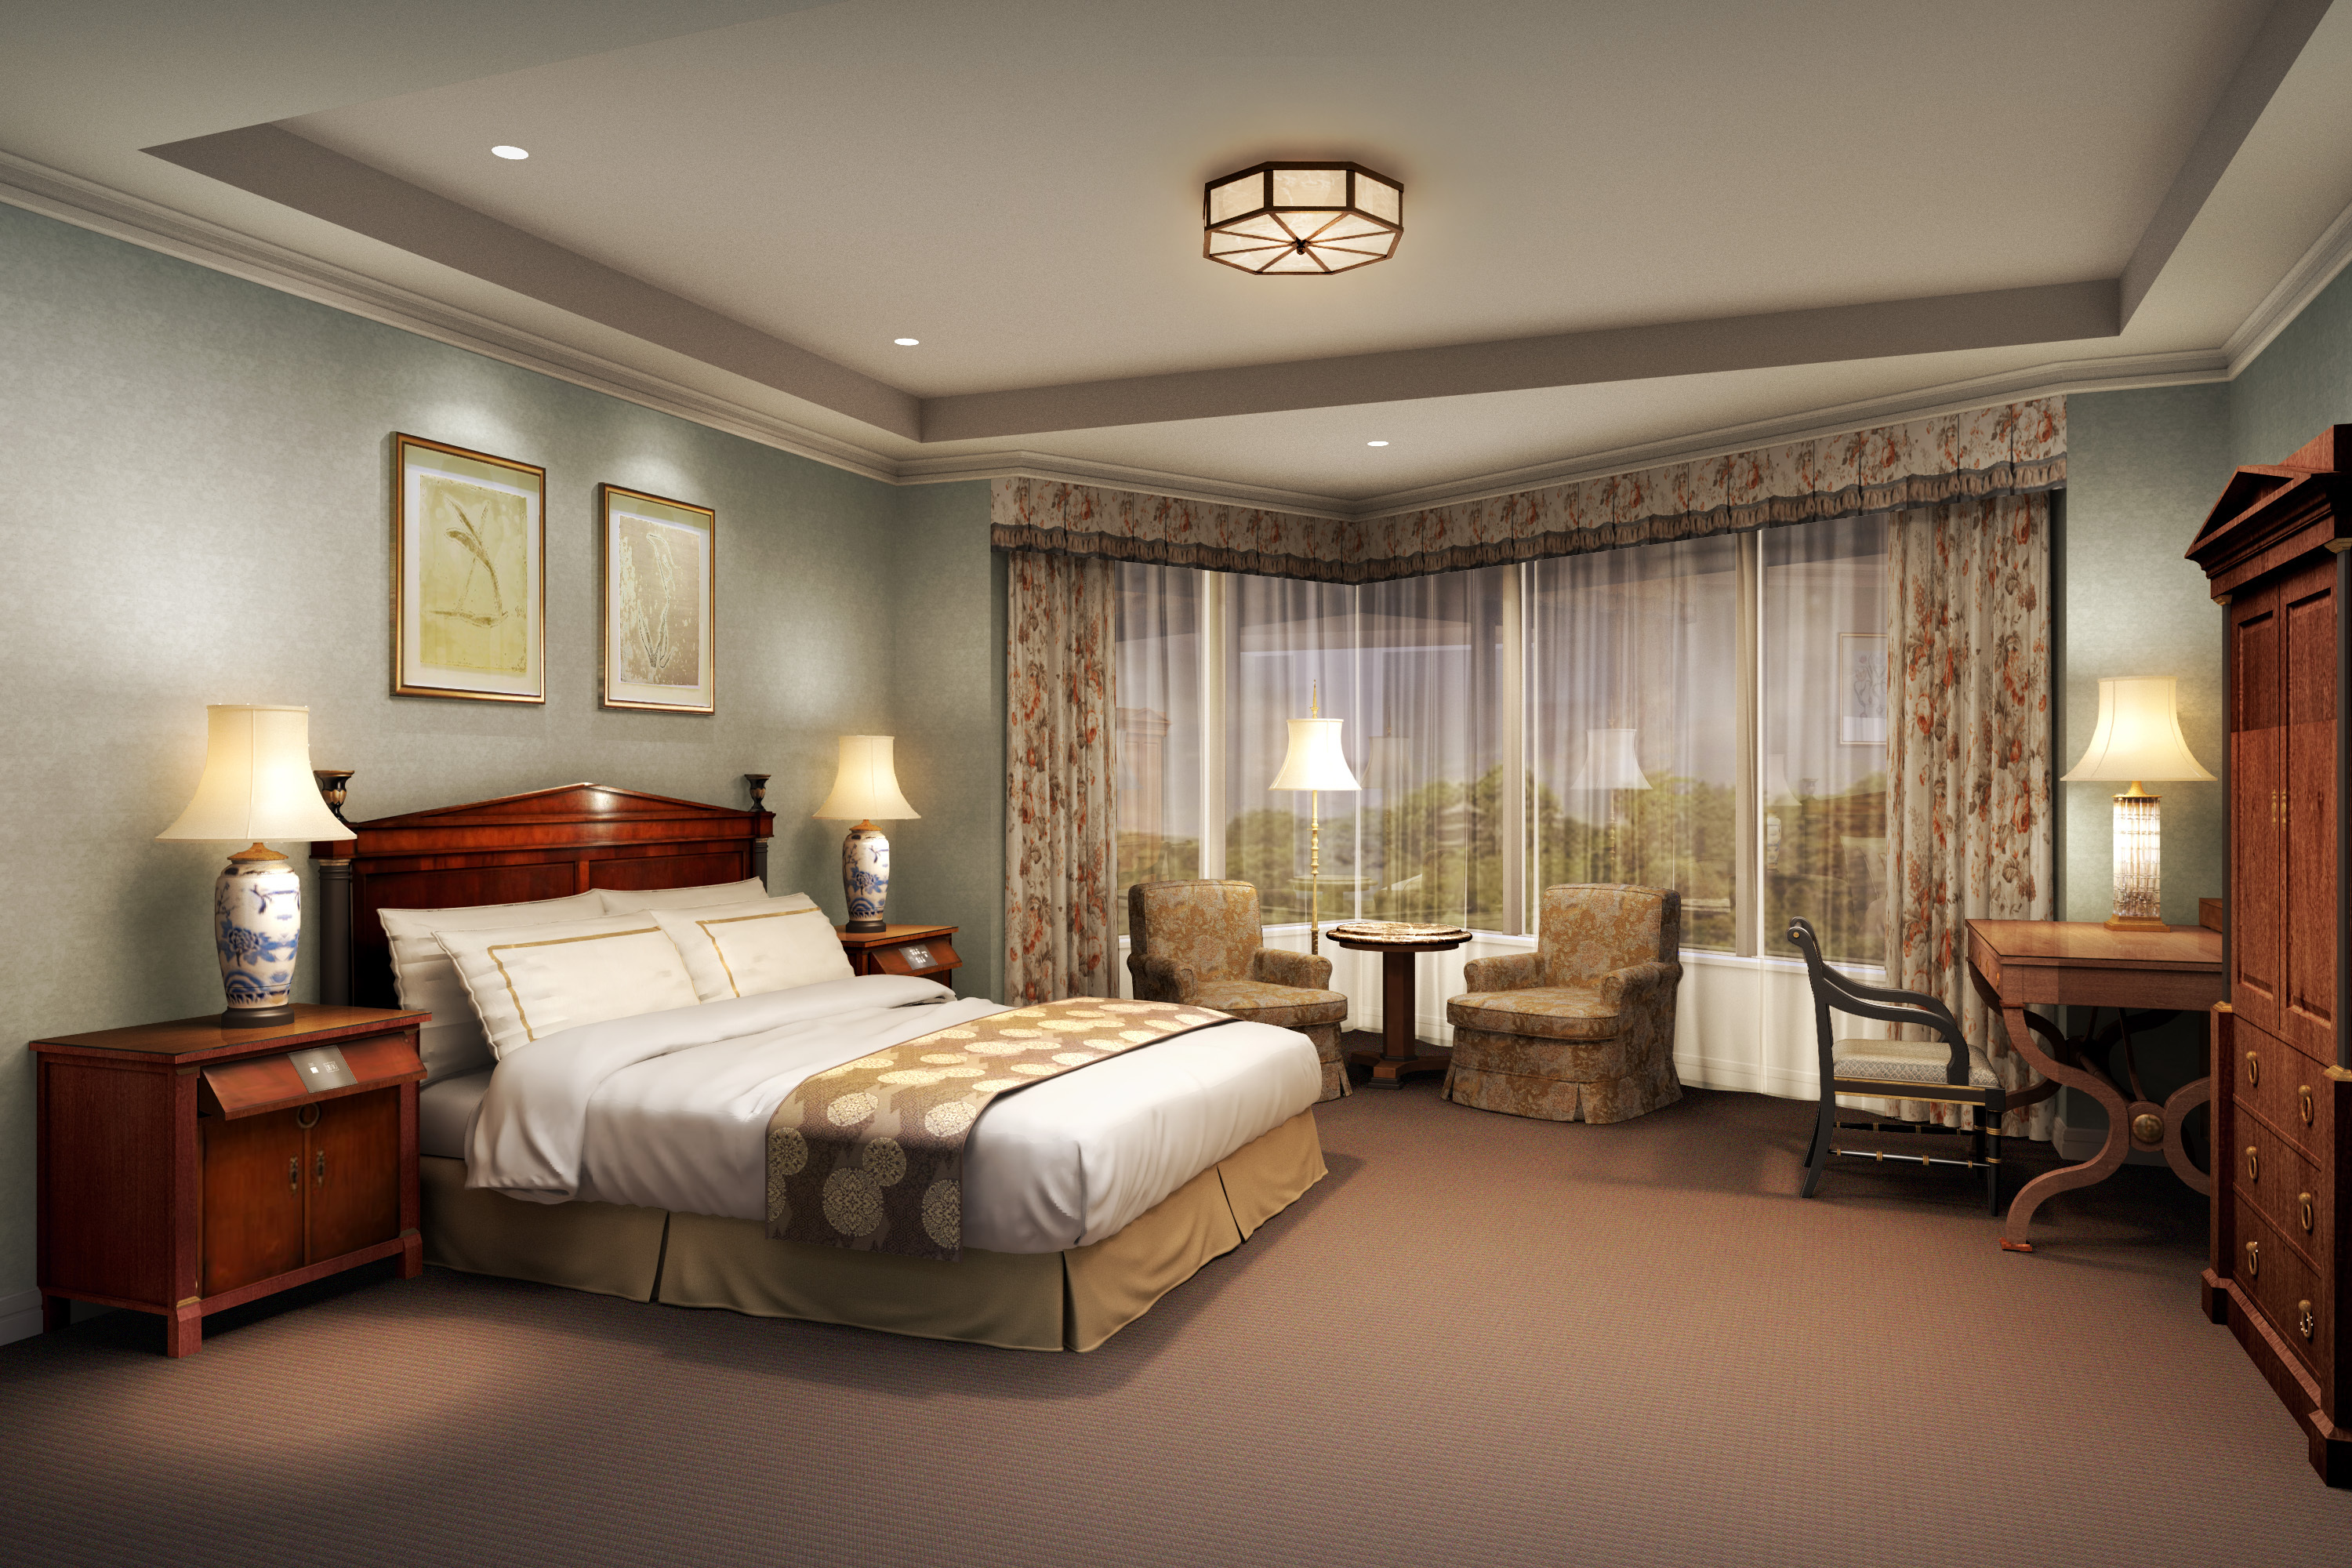 Newly Renovated Rooms At Hotel Chinzanso Tokyo Can Now Be Booked Business Wire